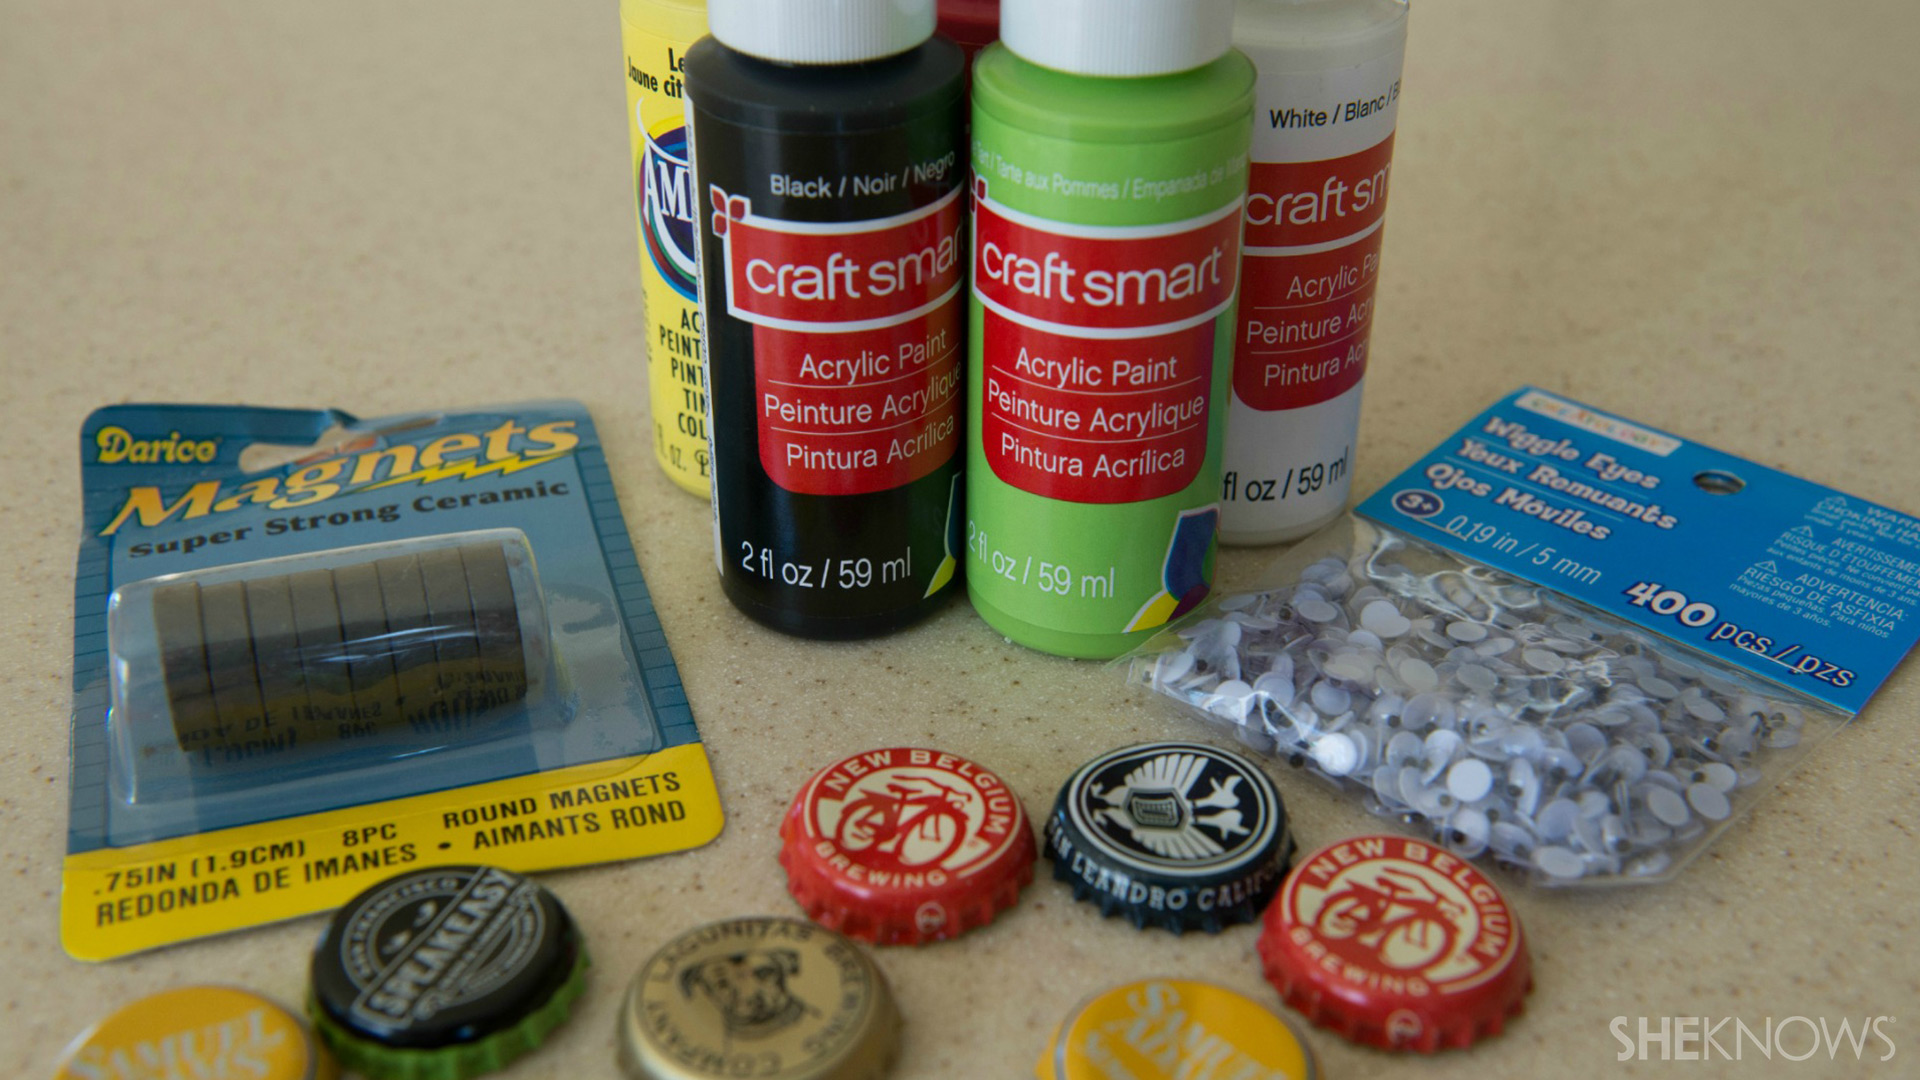 Bottle cap magnets | Sheknows.com - supplies